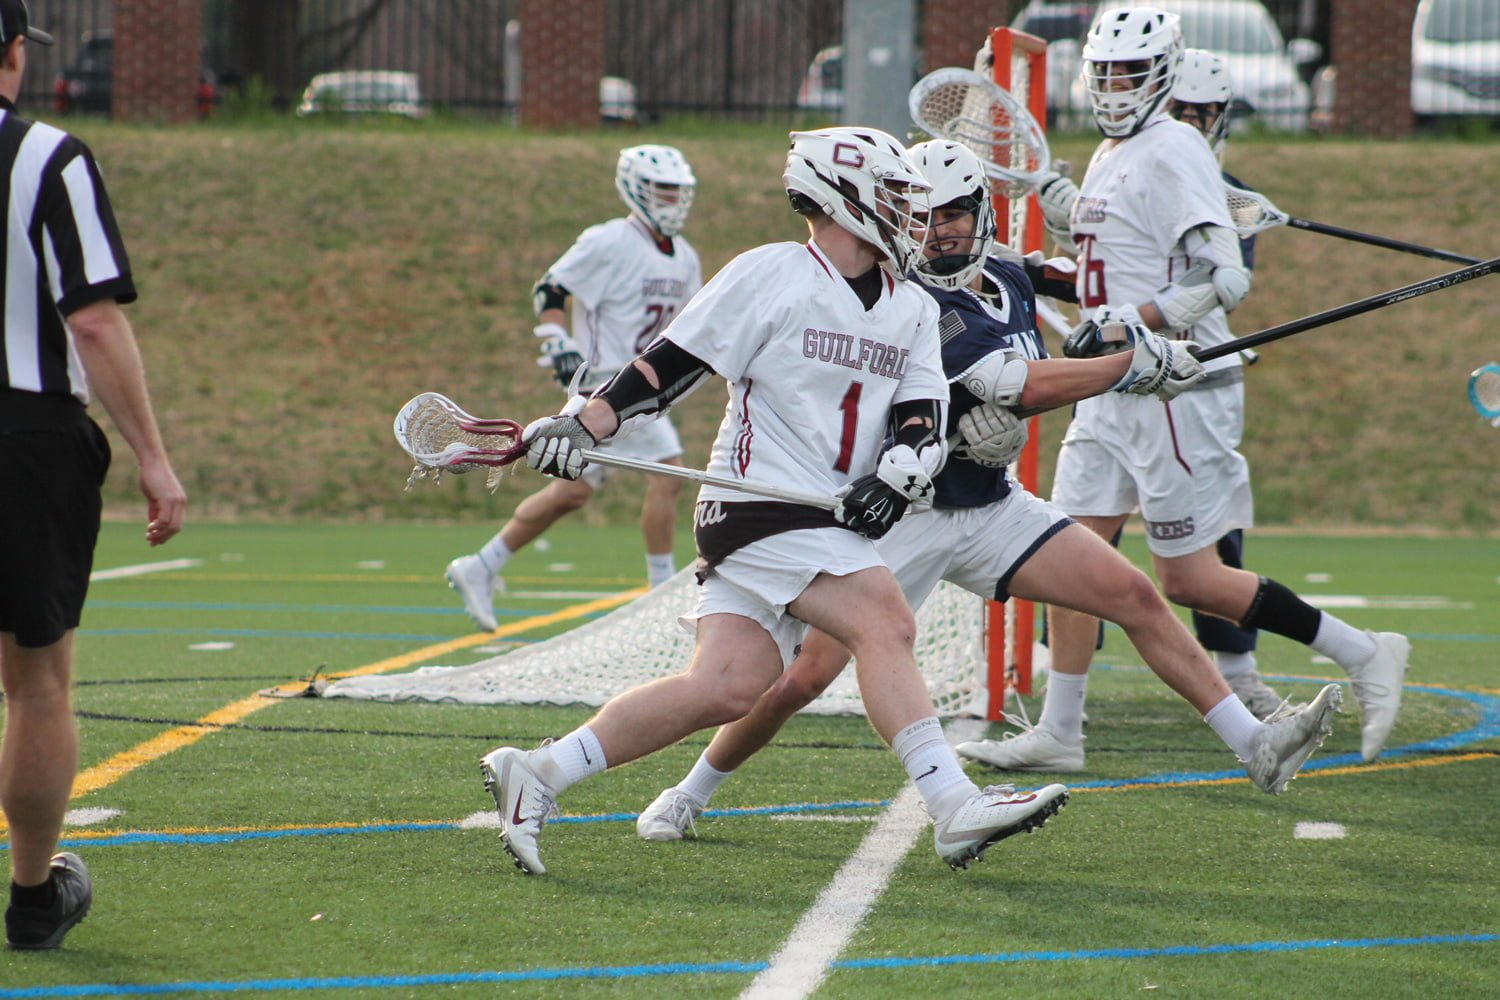 Junior attacker Connor Sweeney tries to get by a Westminster College defender on March 13. //Photo By: Deanna Lassiter/Guilford Athletics